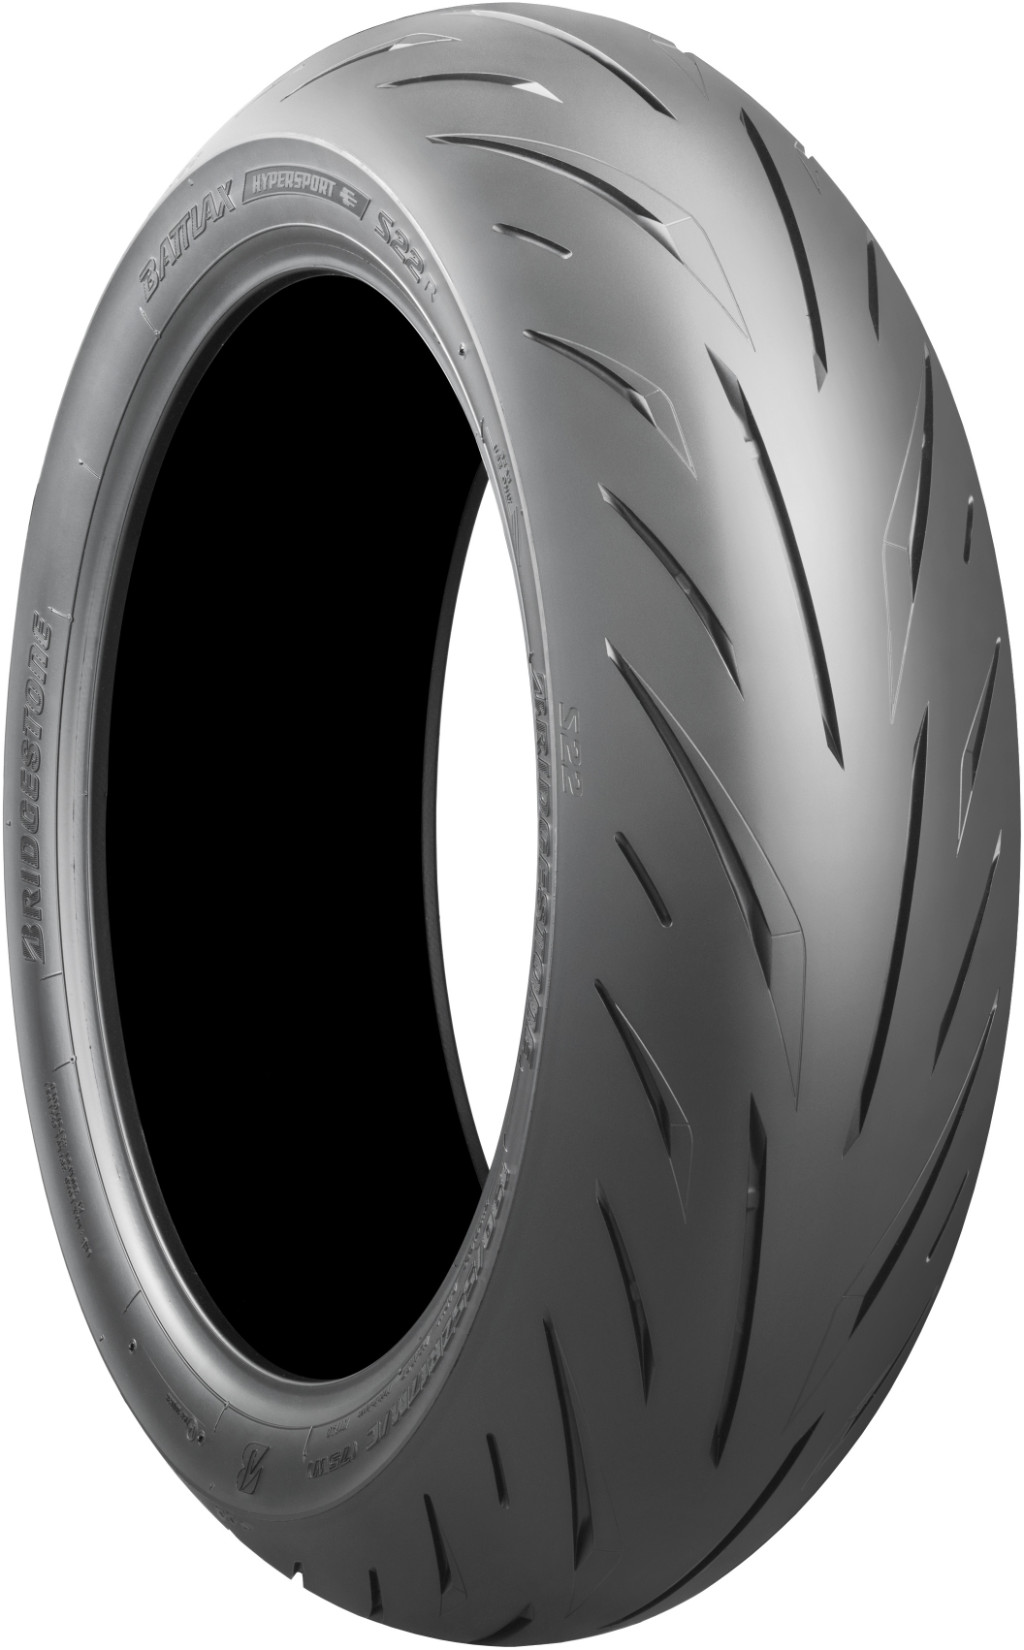 BRIDGESTONE BATTLAX гиперкаром С22 [190/50zr17m/C(от 73 Вт)] BATTLAX гипер с